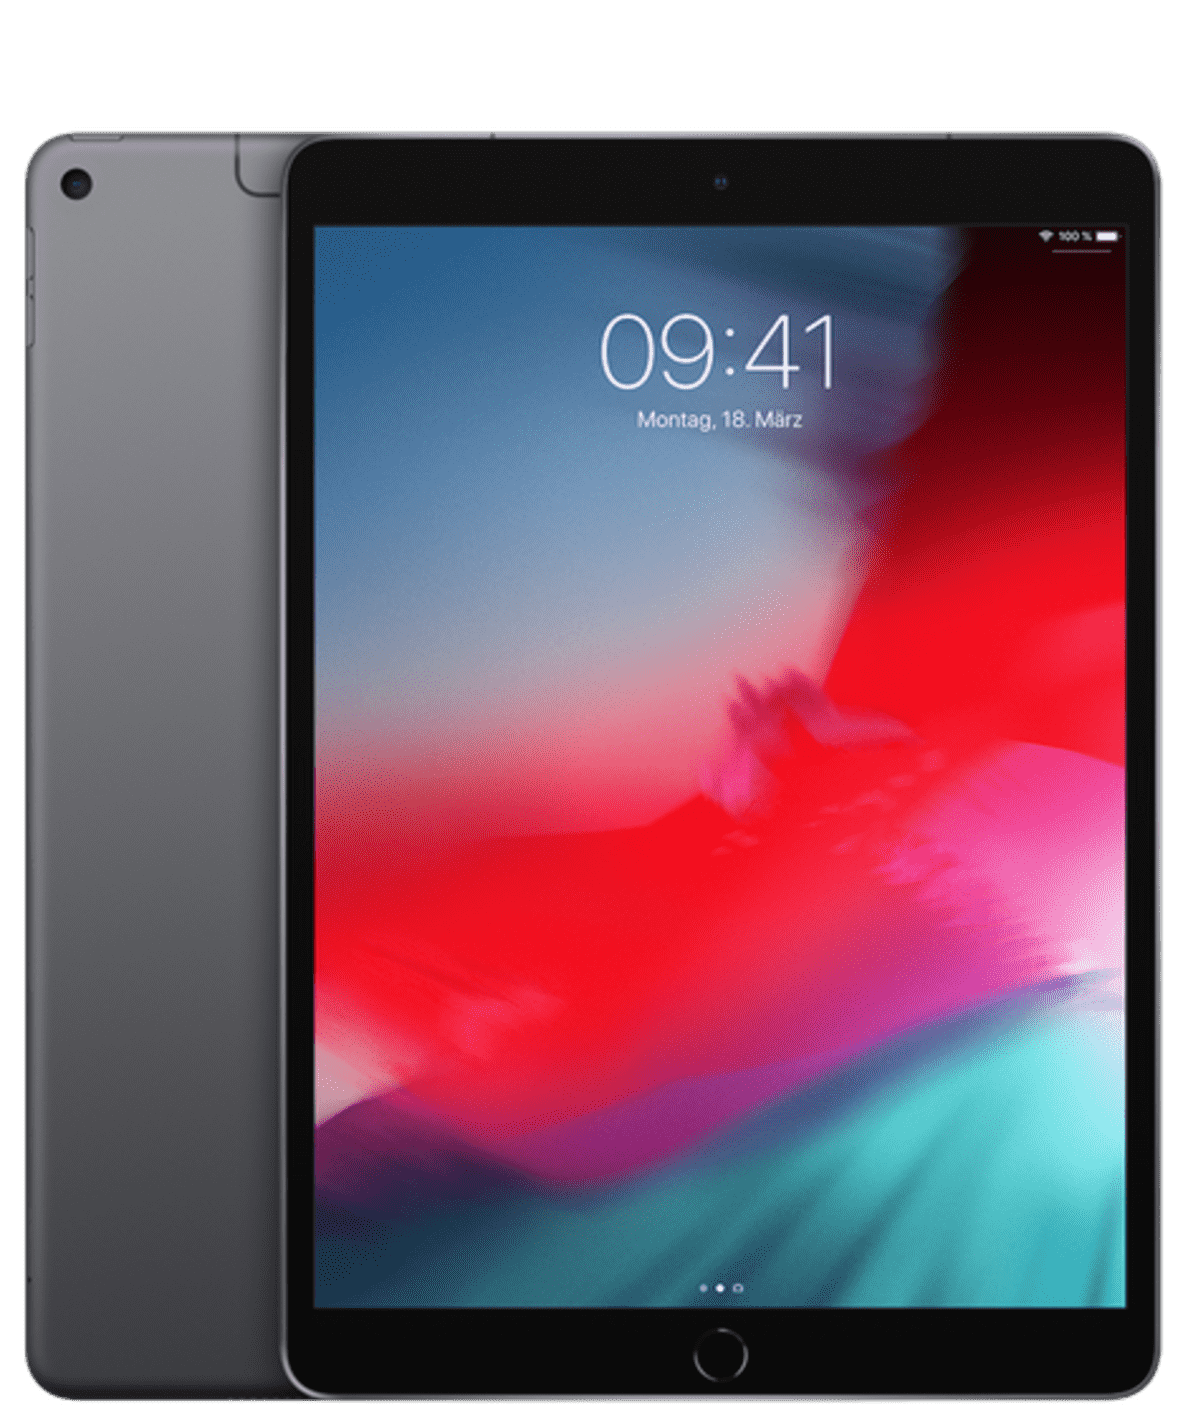 APPLE iPad Air (2019) Cellular Tablet, 256 GB in Space Grey